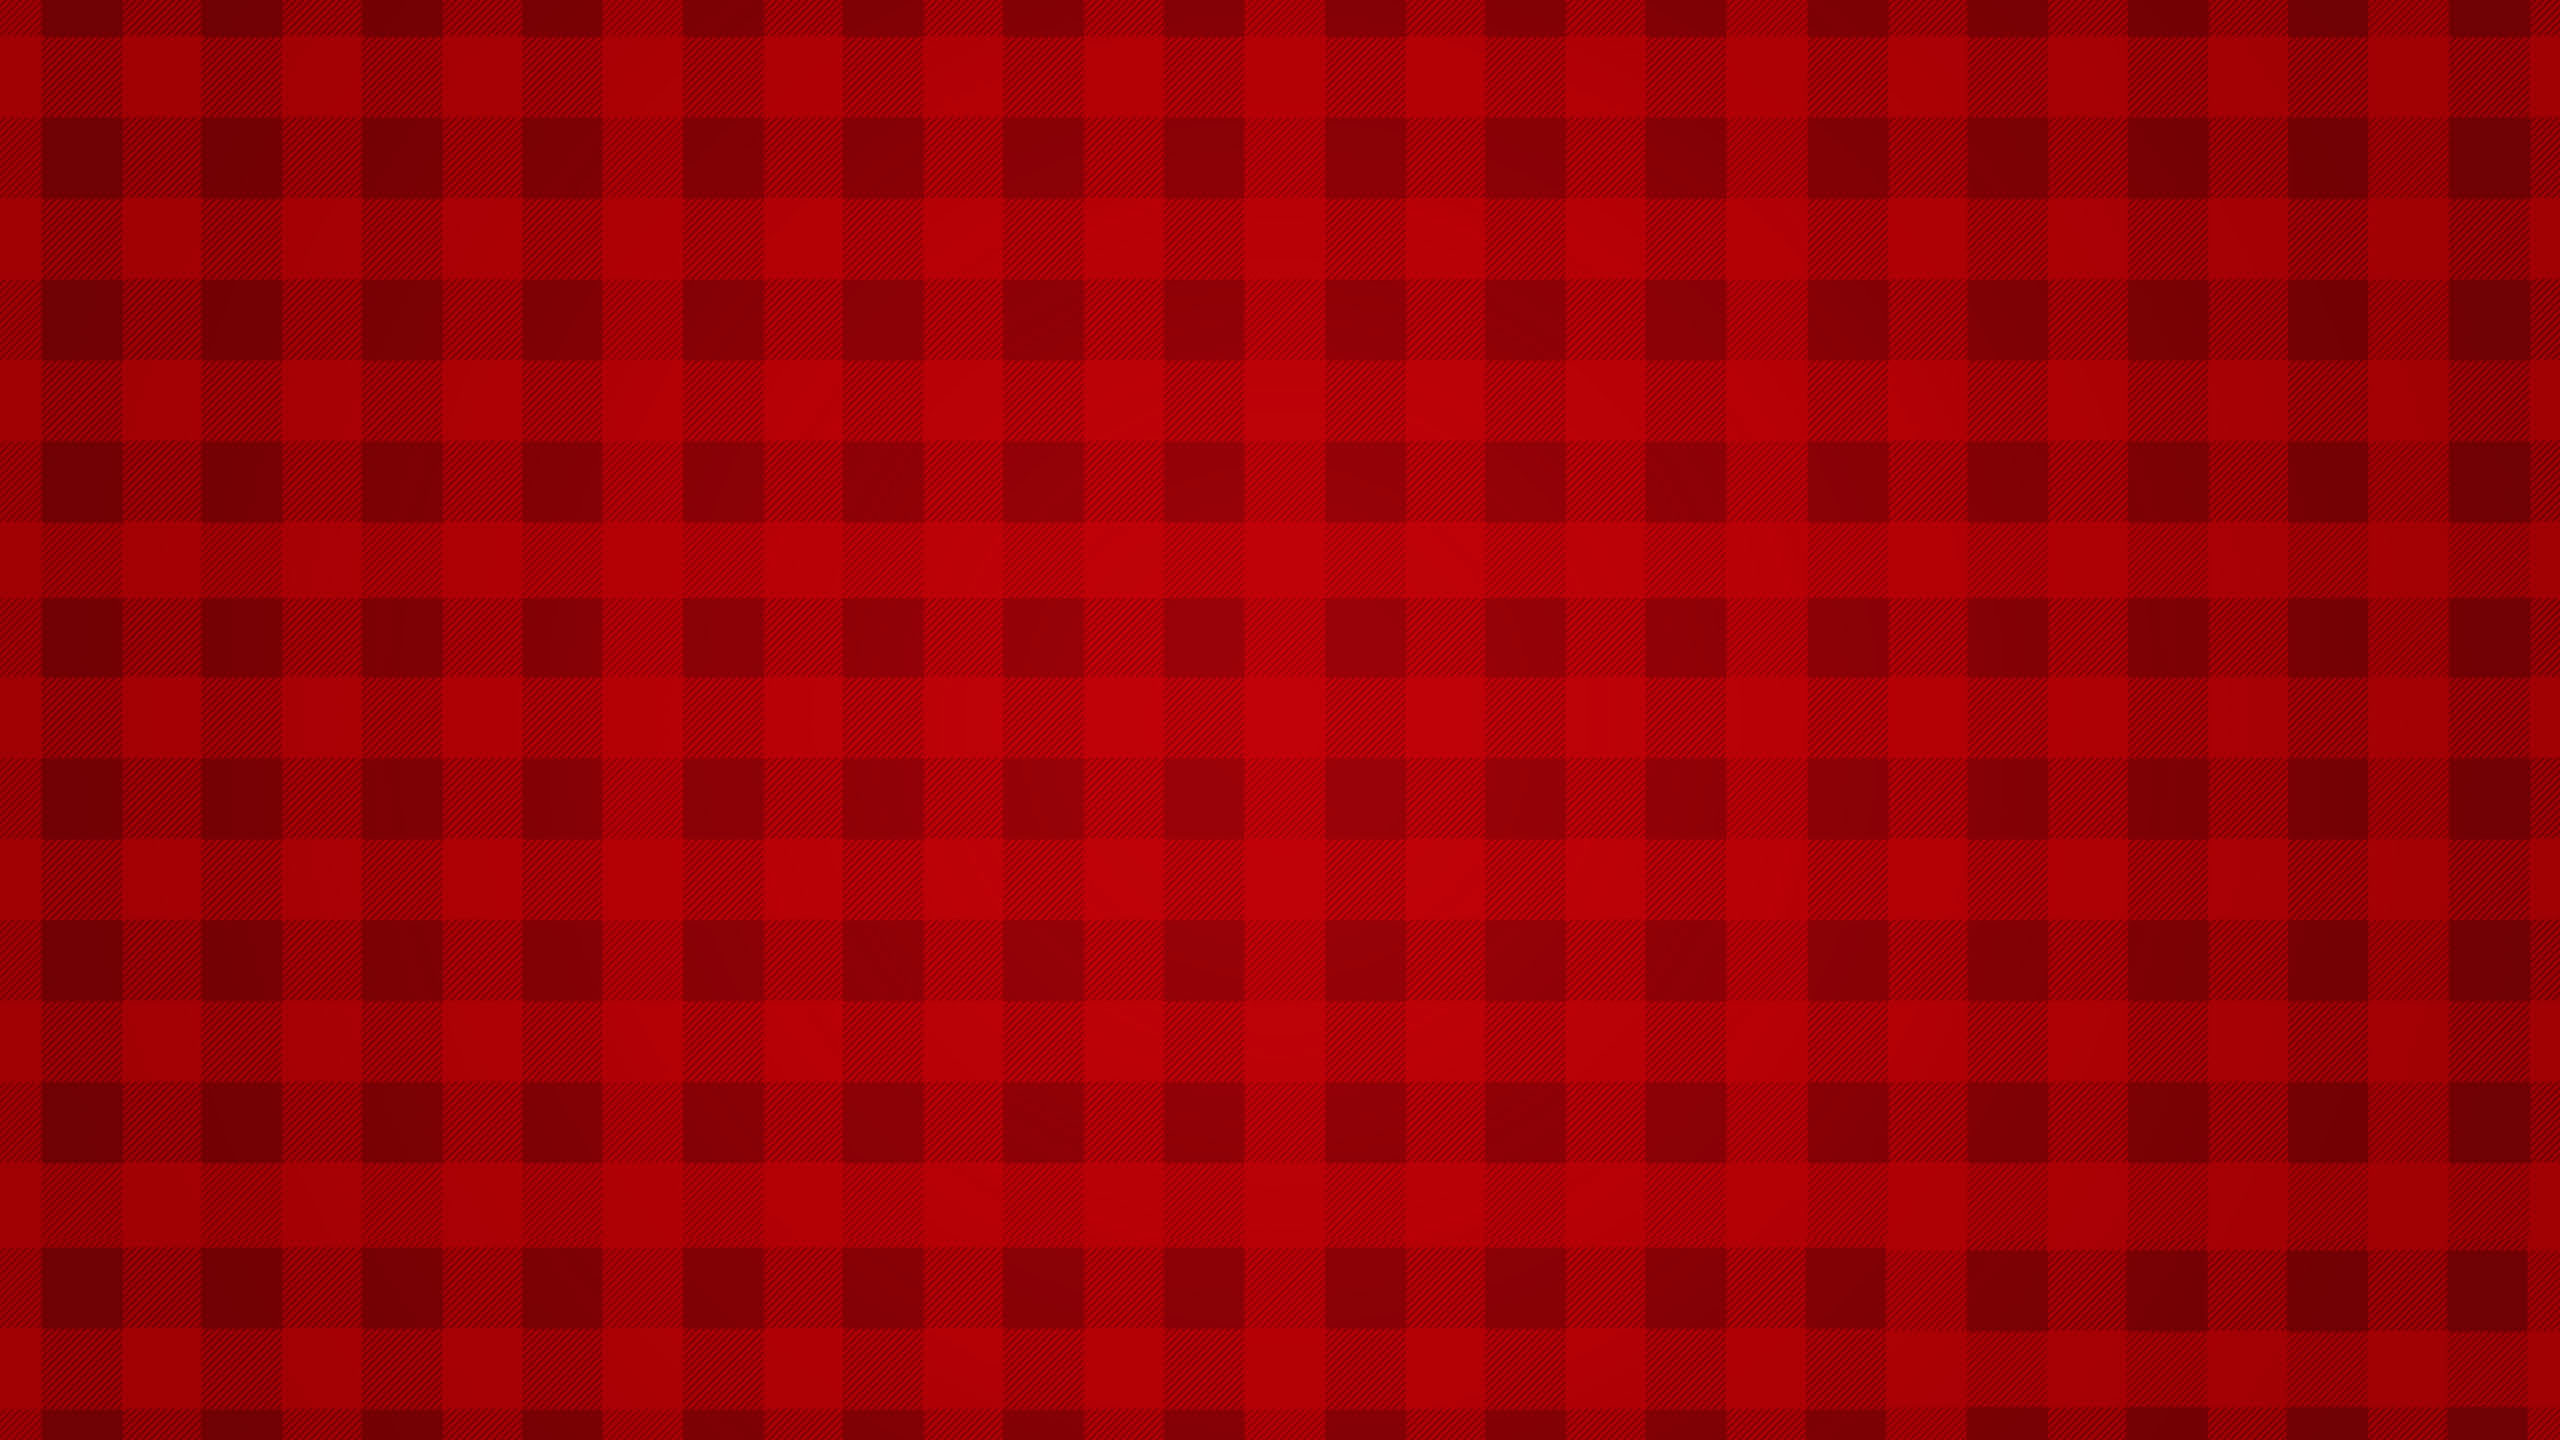 2560x1440 minimalism, manchester united, texture, mu, gingham, red devil photo